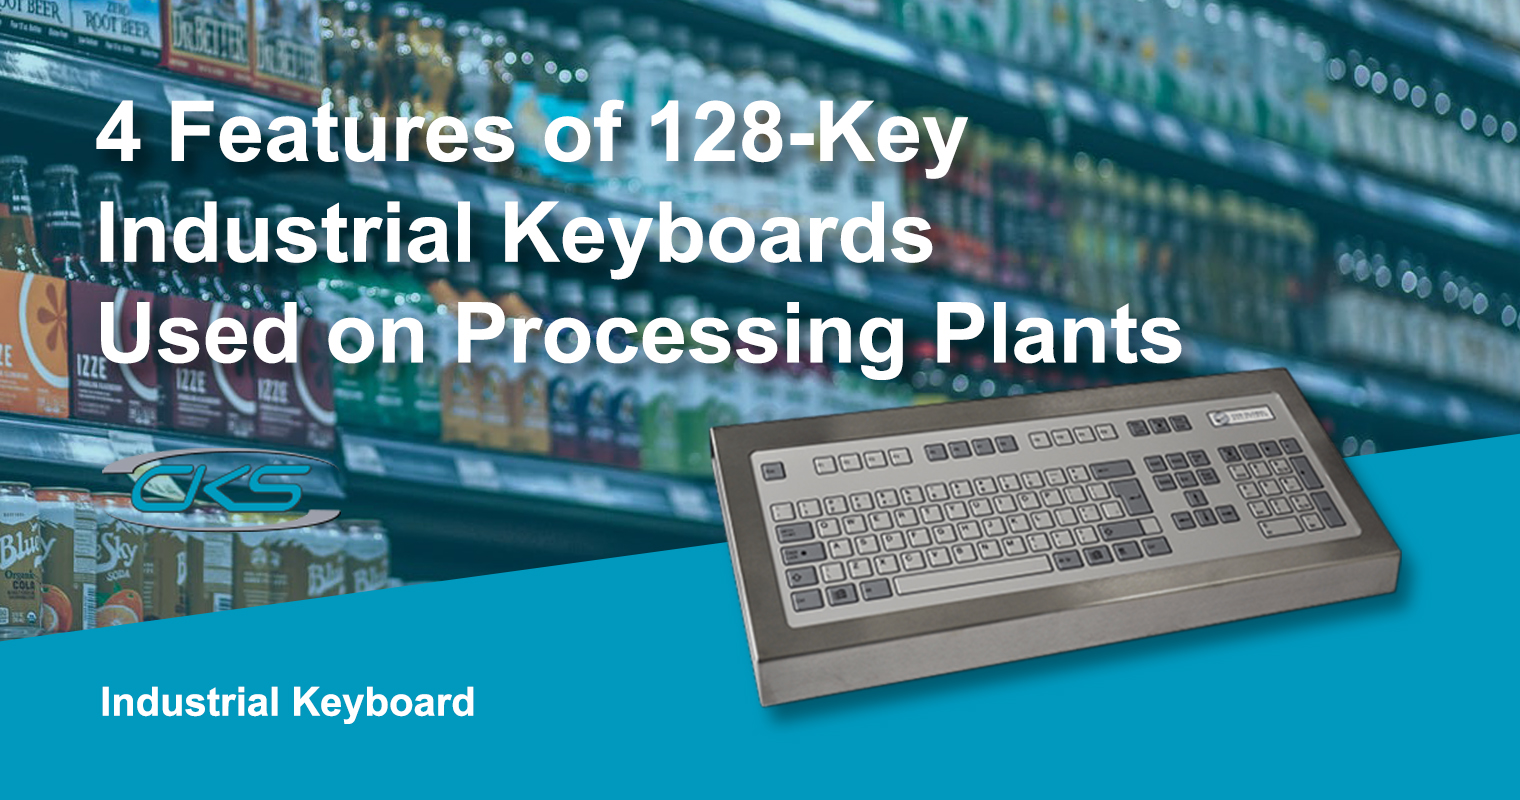 4 Features of 128-Key Industrial Keyboards Used on